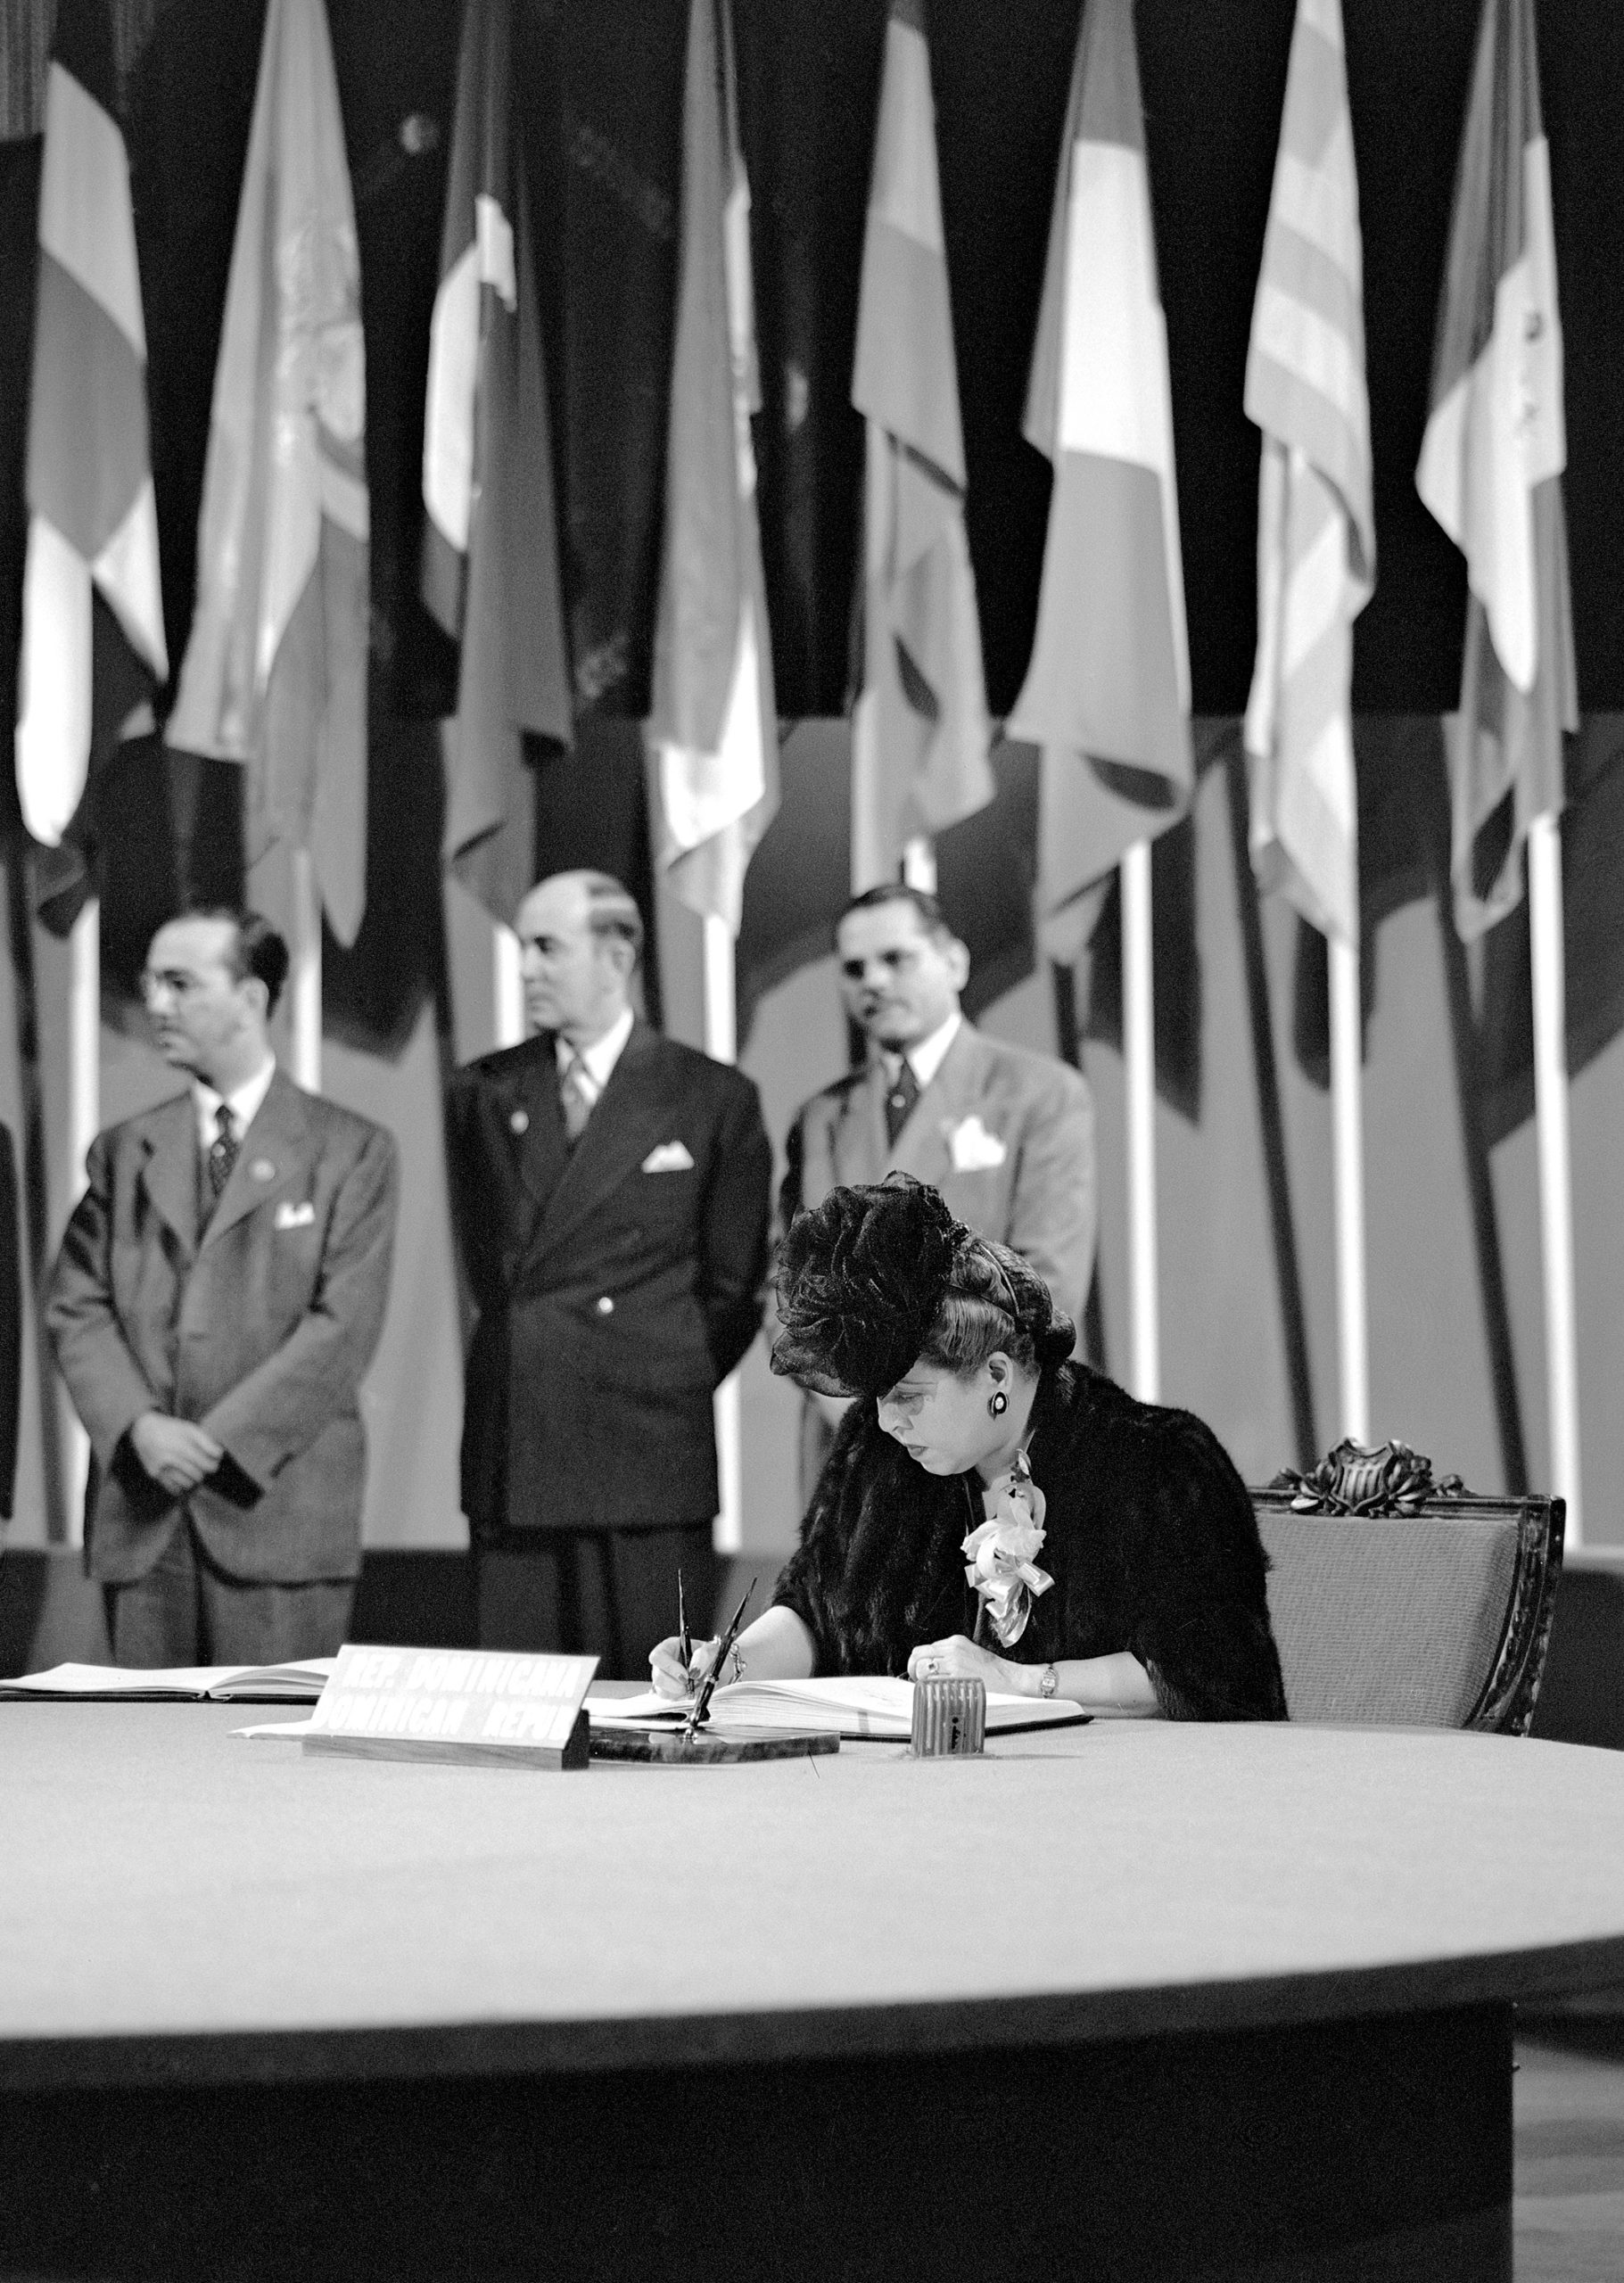 Minerva Bernardino, President of the Inter-American Commission of Women, Delegation from the Dominican Republic signing the UN Charter 26 June 1945